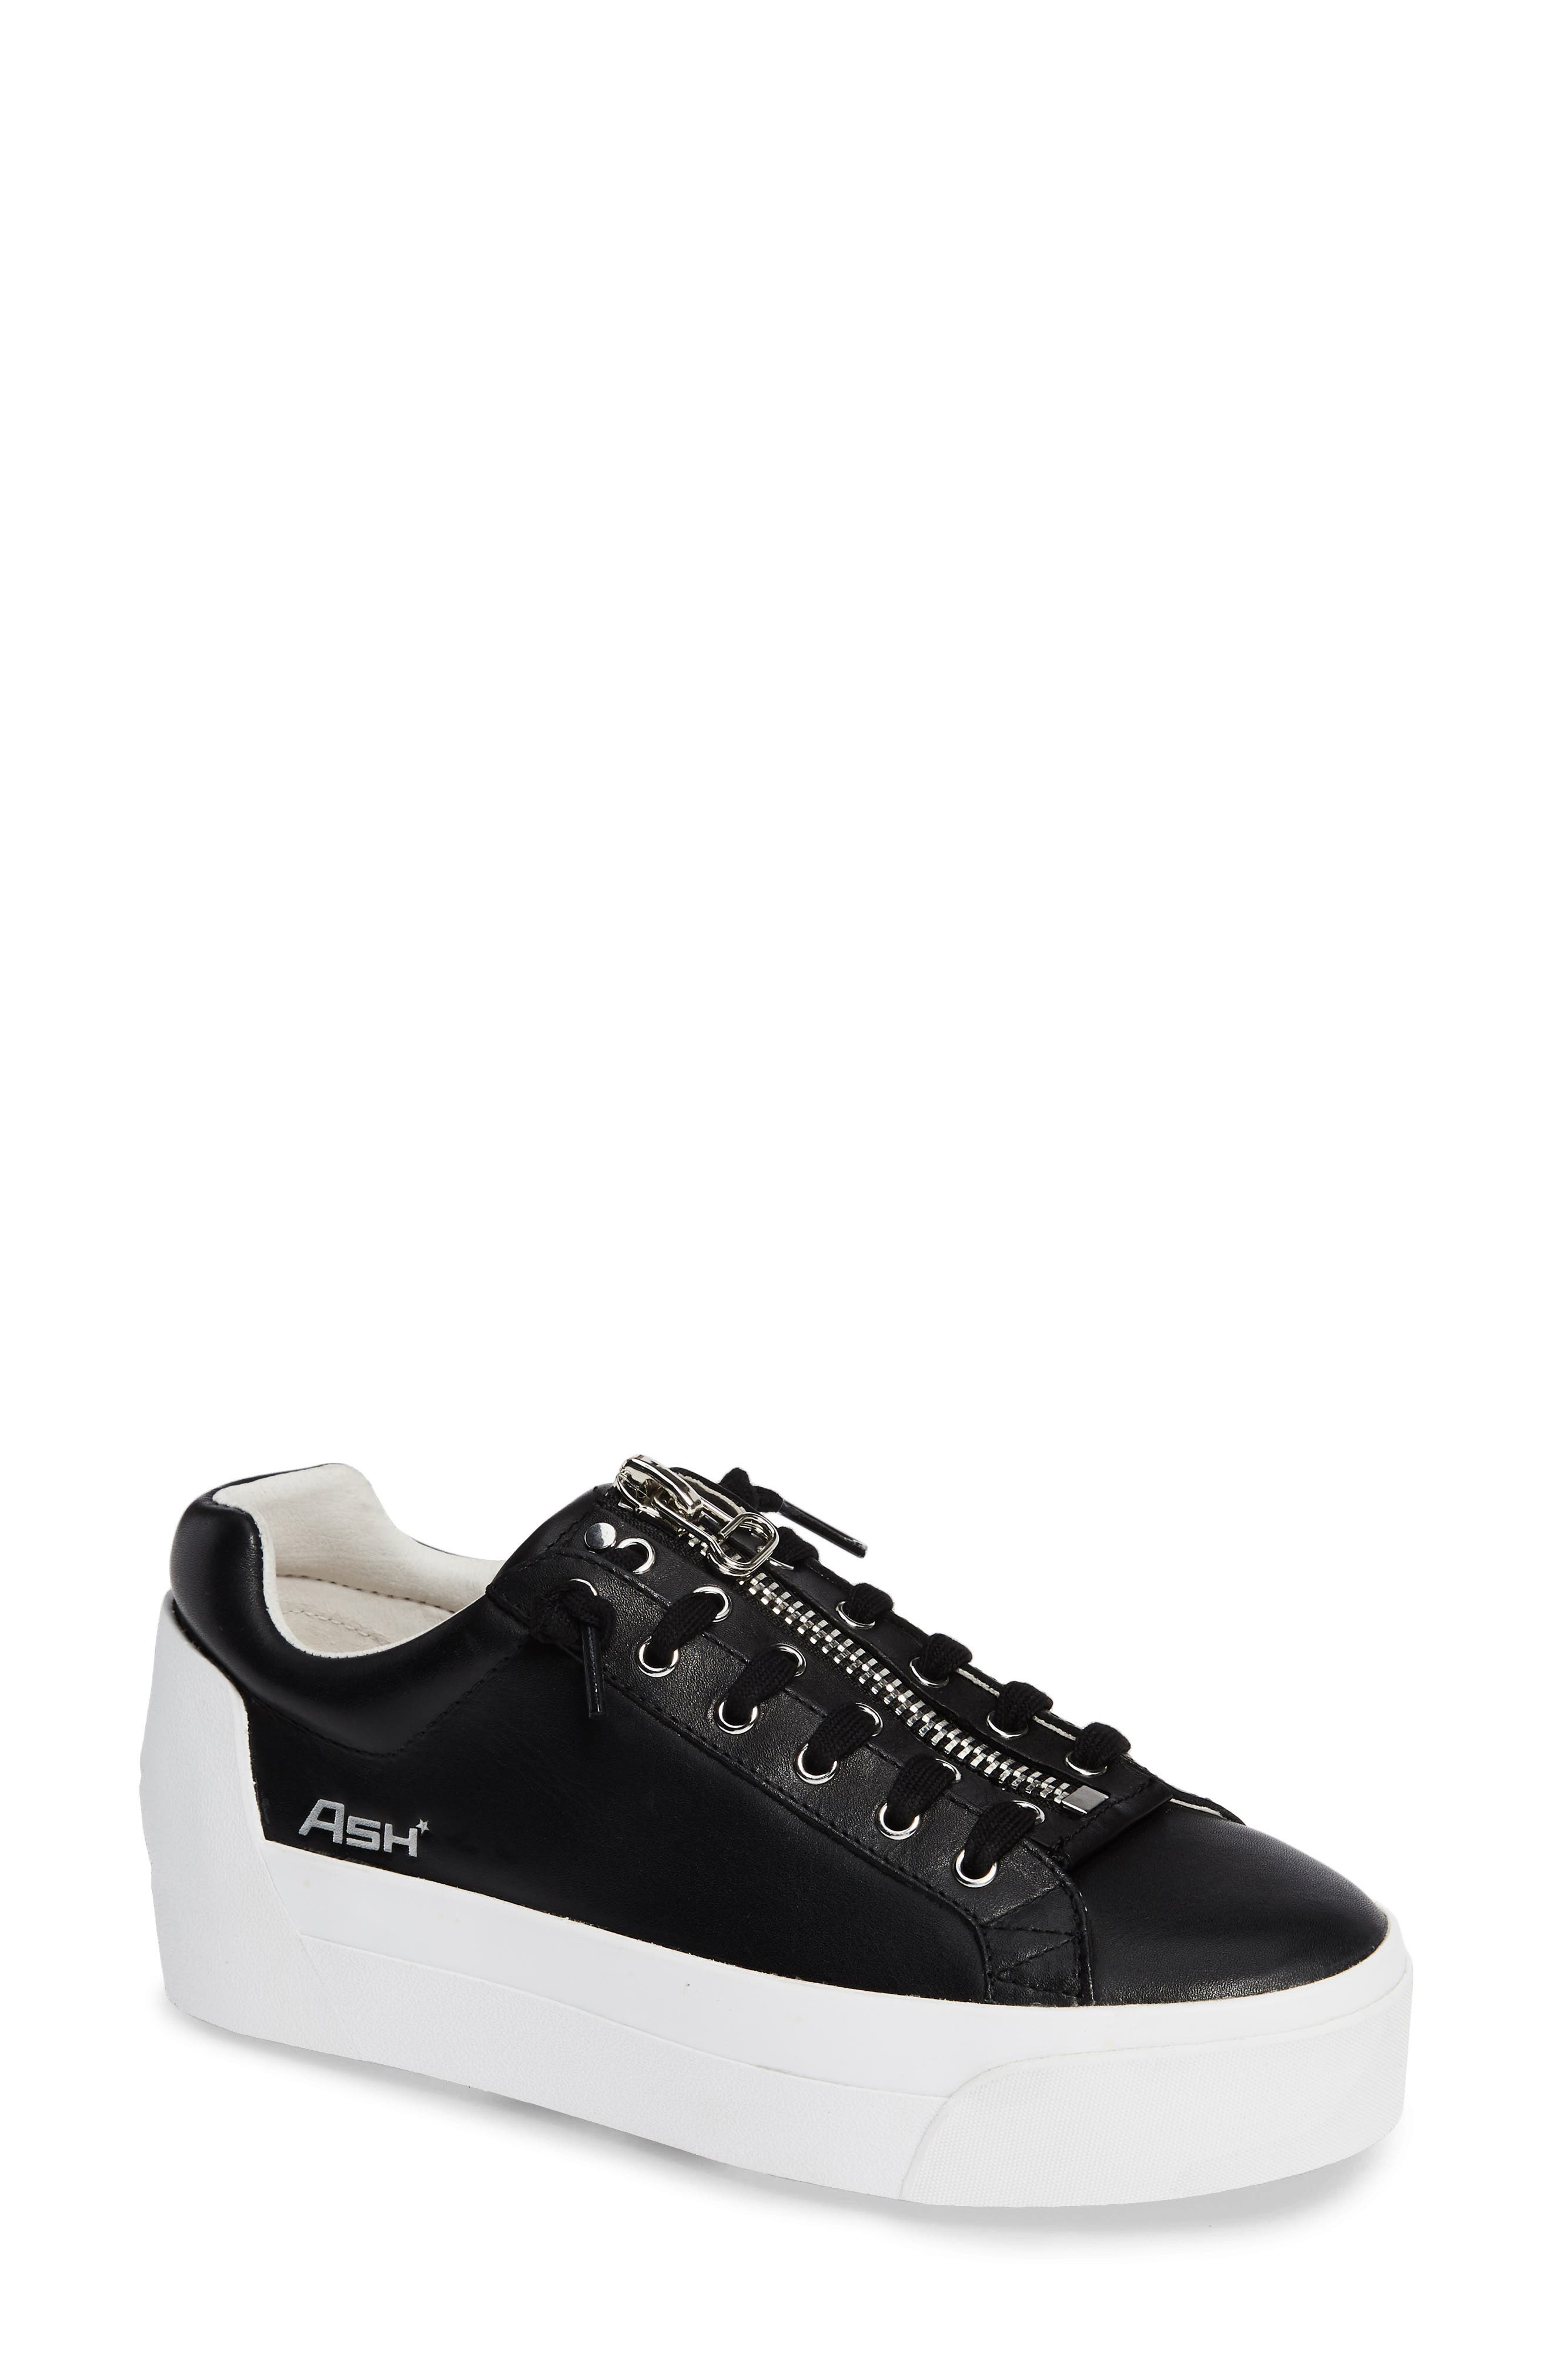 ASH Buzz Leather Flatform Creepers in Black/ Black